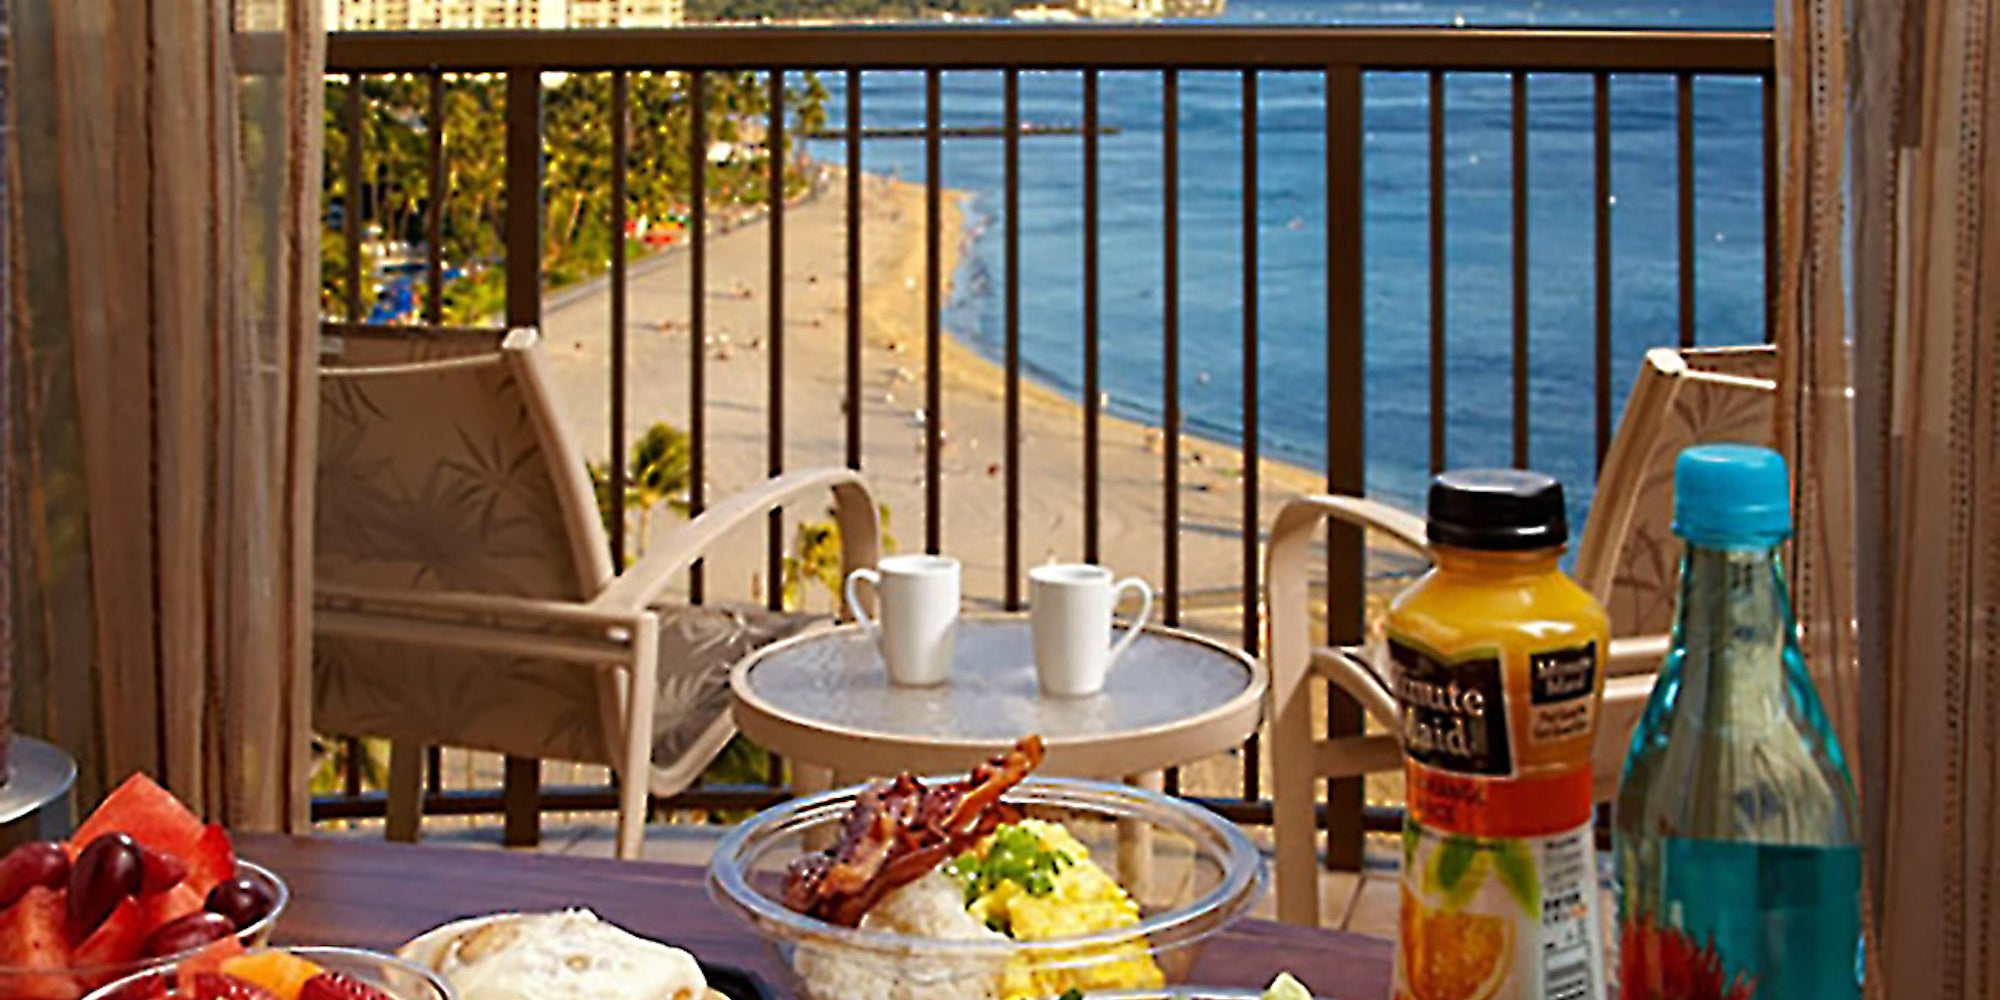 8 Ways Hotel Room Service Is Changing